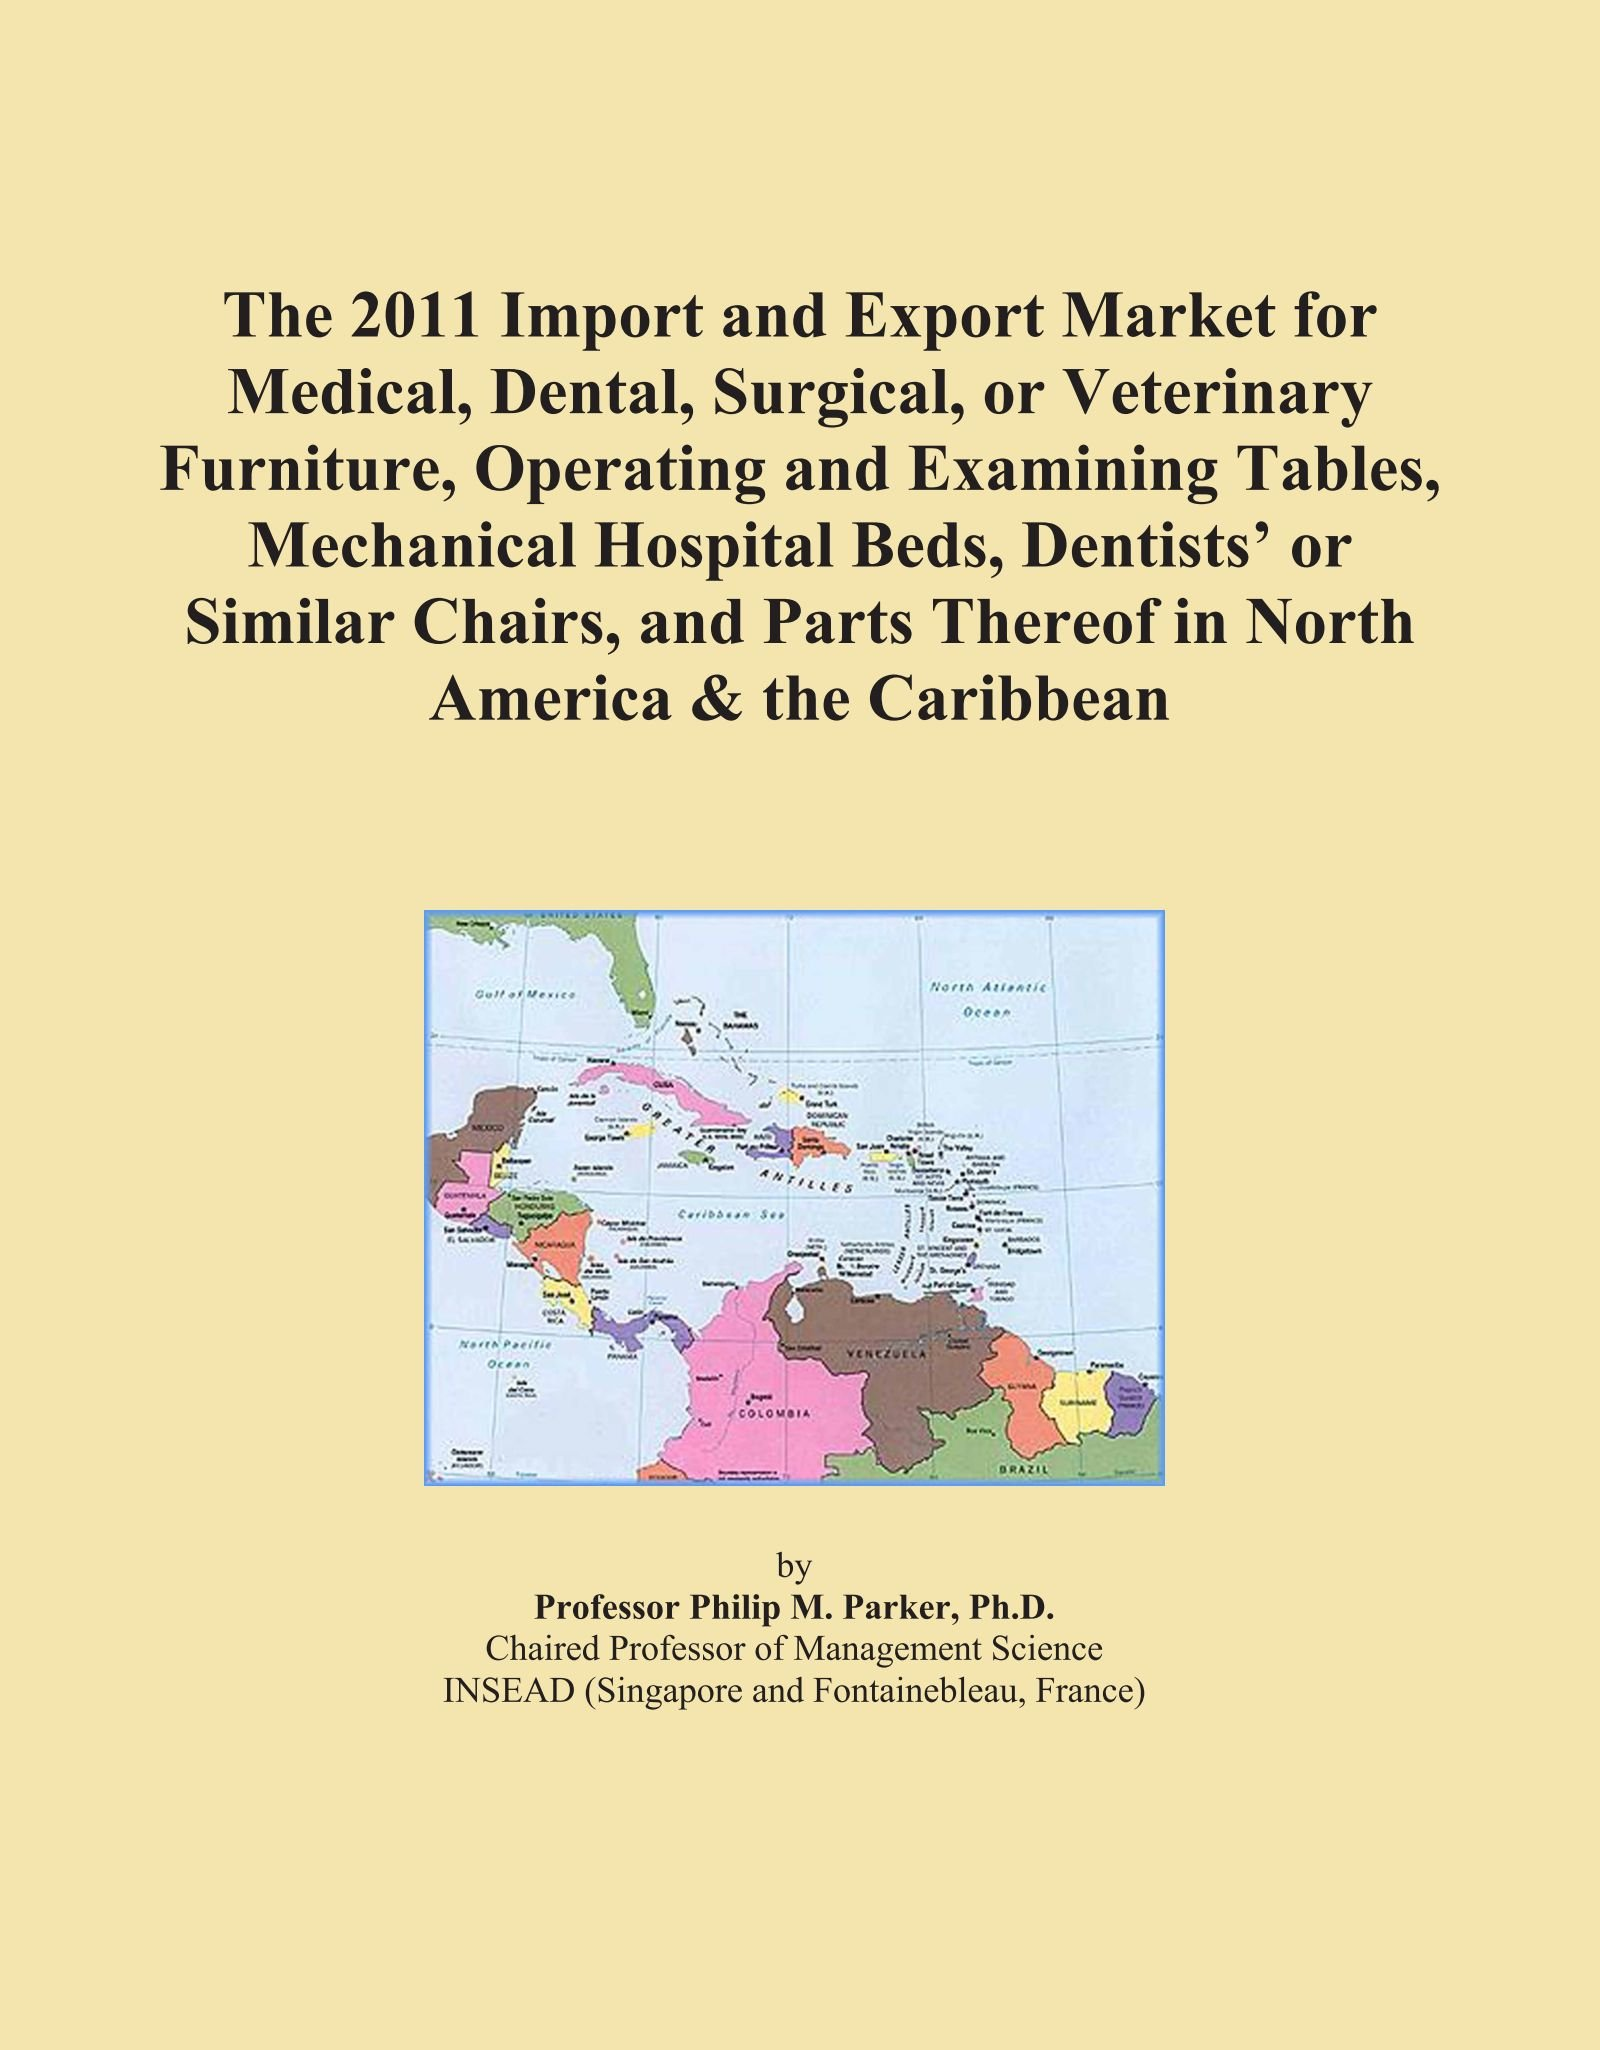 The 2011 Import and Export Market for Medical, Dental, Surgical, or Veterinary Furniture, Operating and Examining Tables, Mechanical Hospital Beds, ... Thereof in North America & the Caribbean